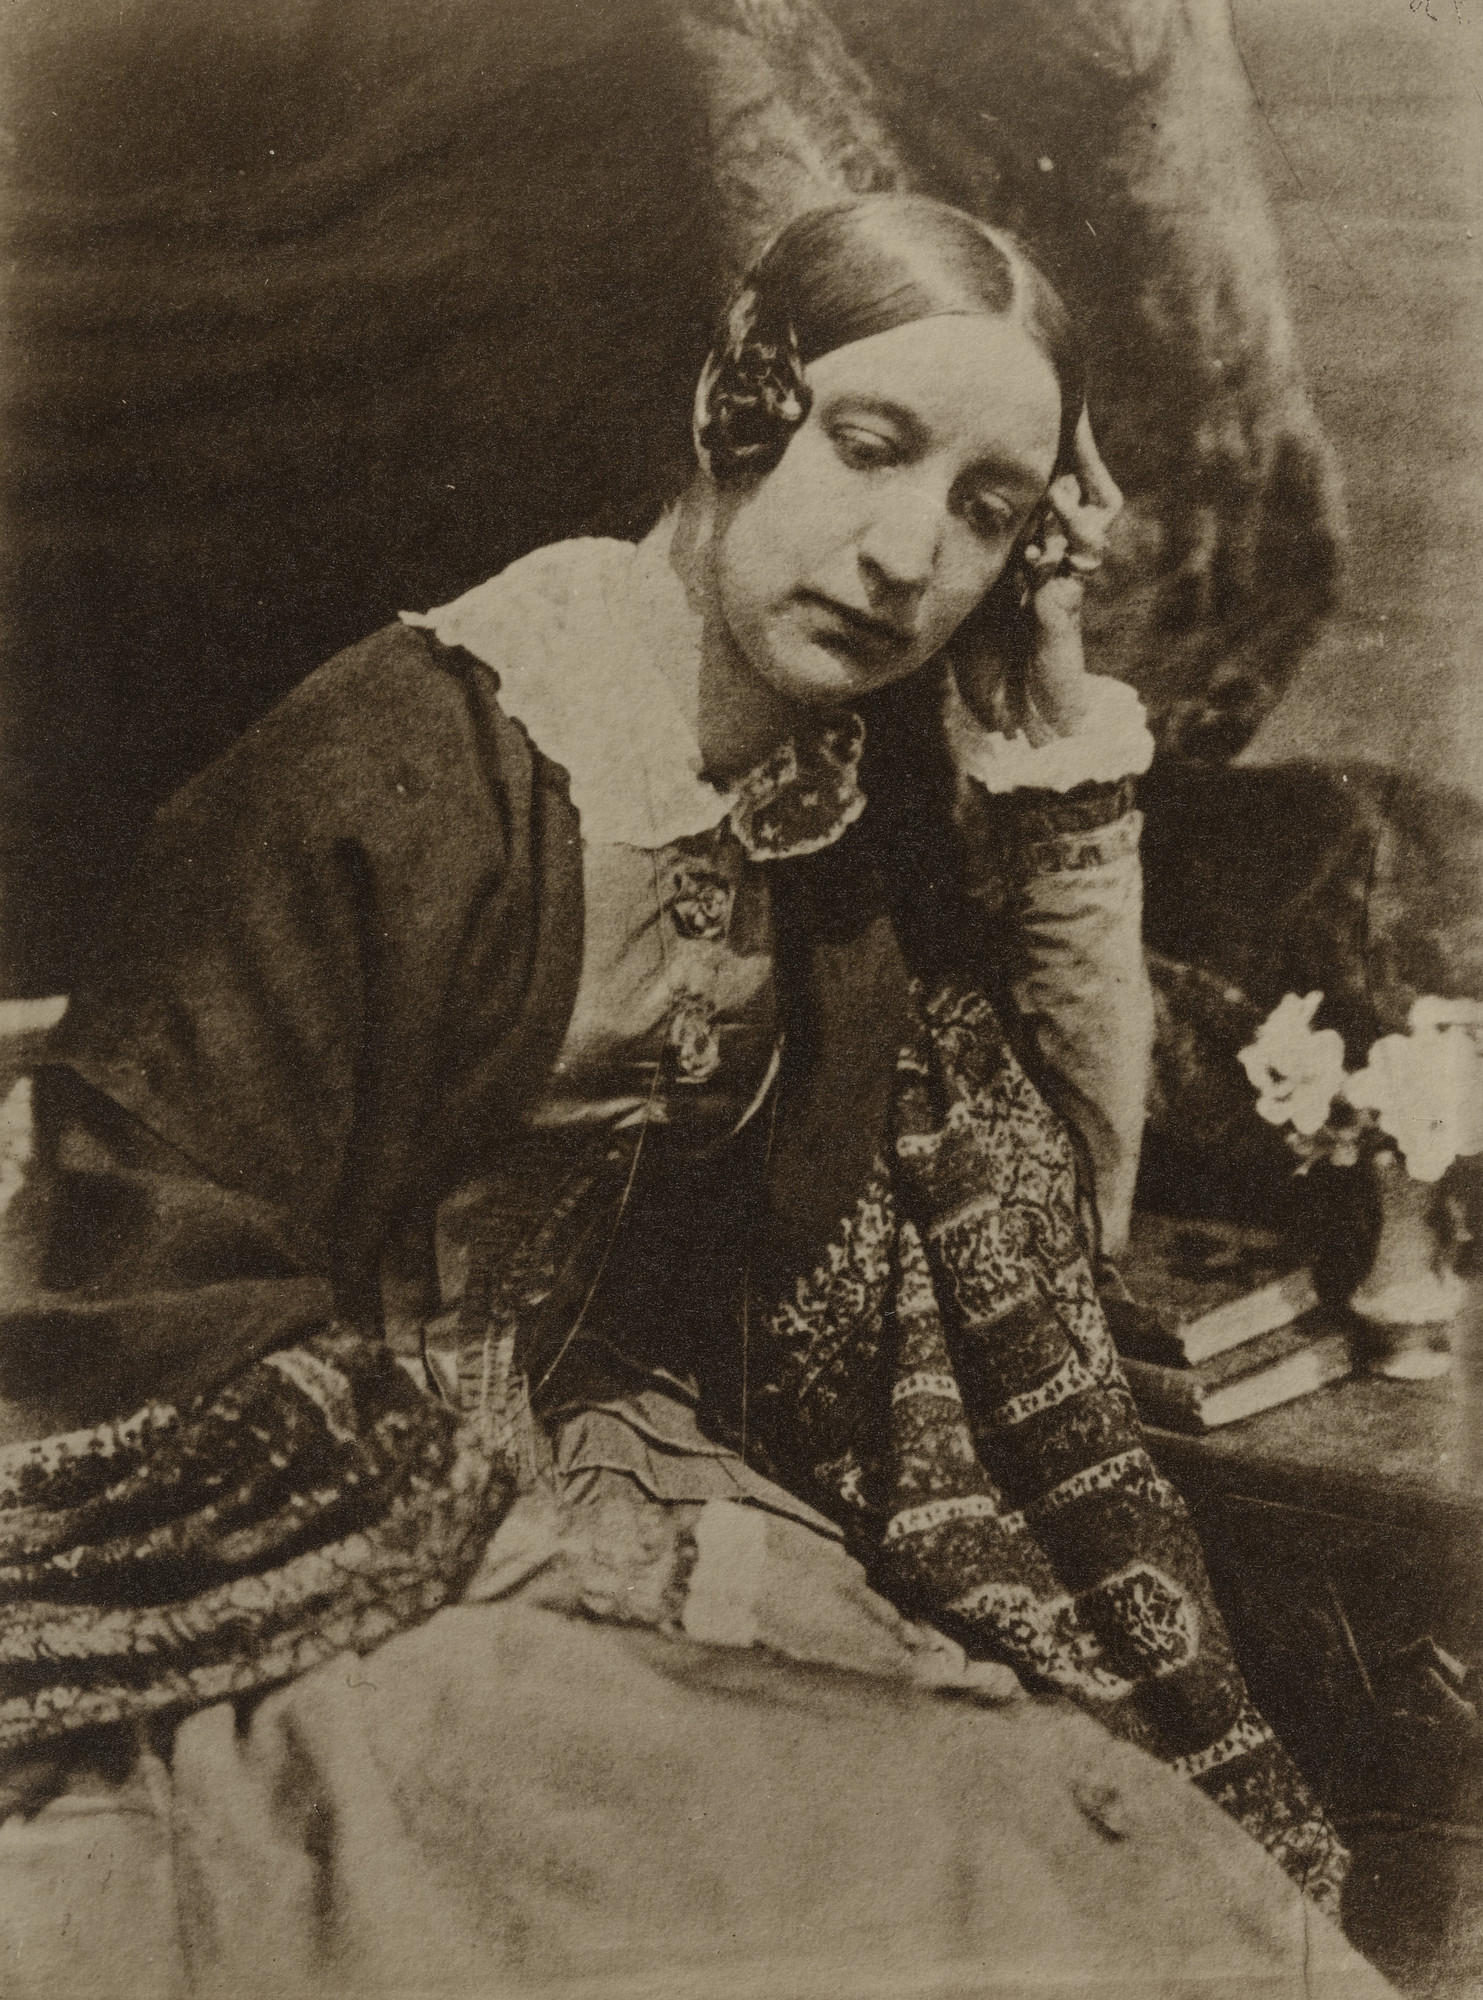 David Octavius Hill, Robert Adamson. Lady Elizabeth Eastlake. c. 1844